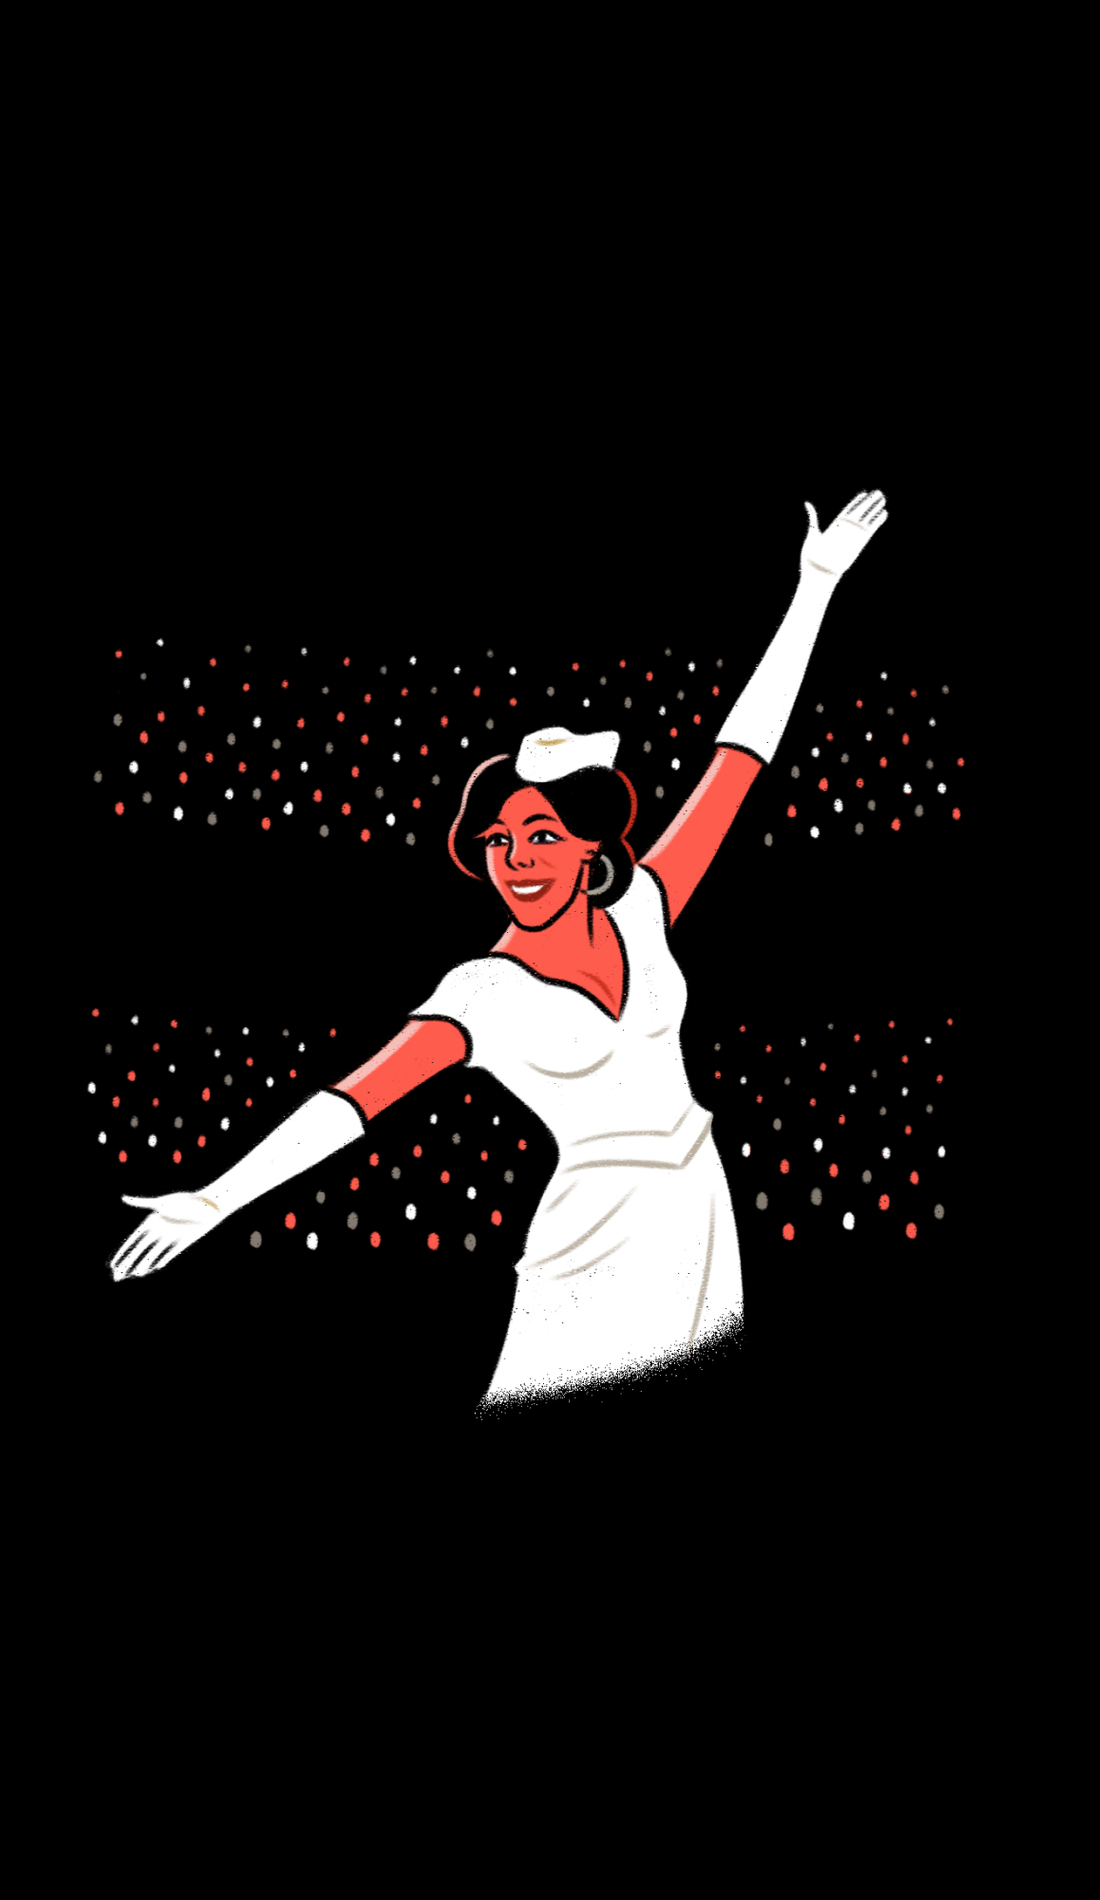 A Sing-a-Long-a Sound of Music live event